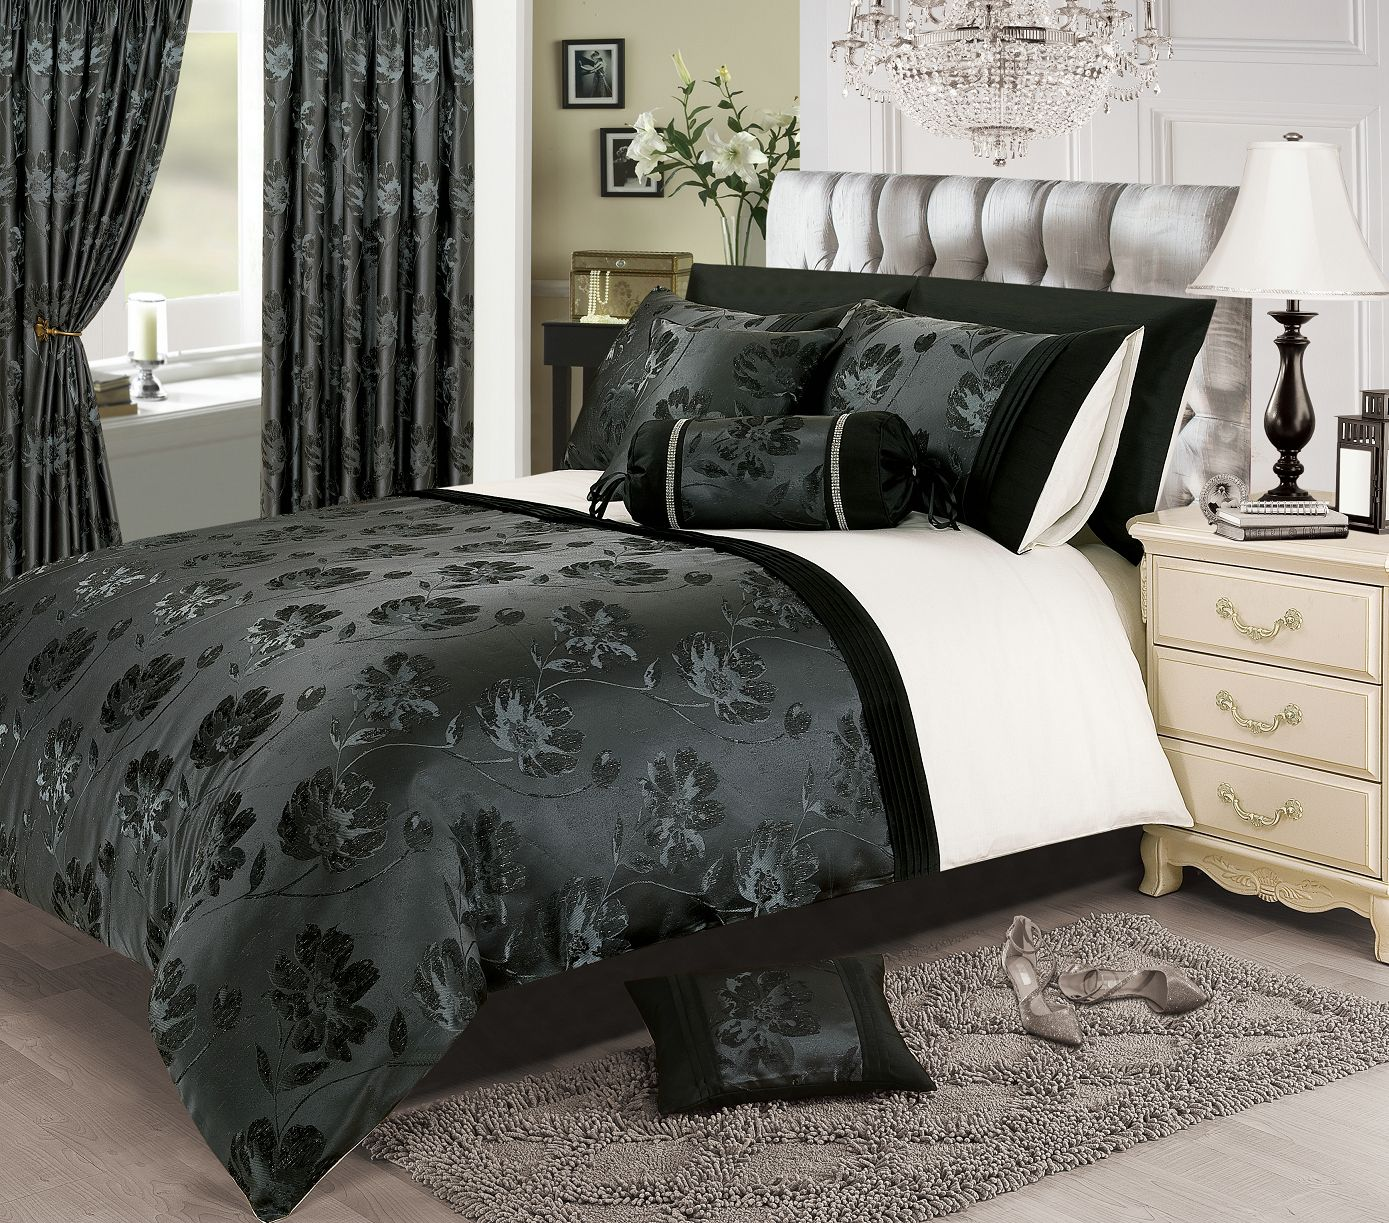 Black Silver White Colour Stylish Floral Jacquard Duvet